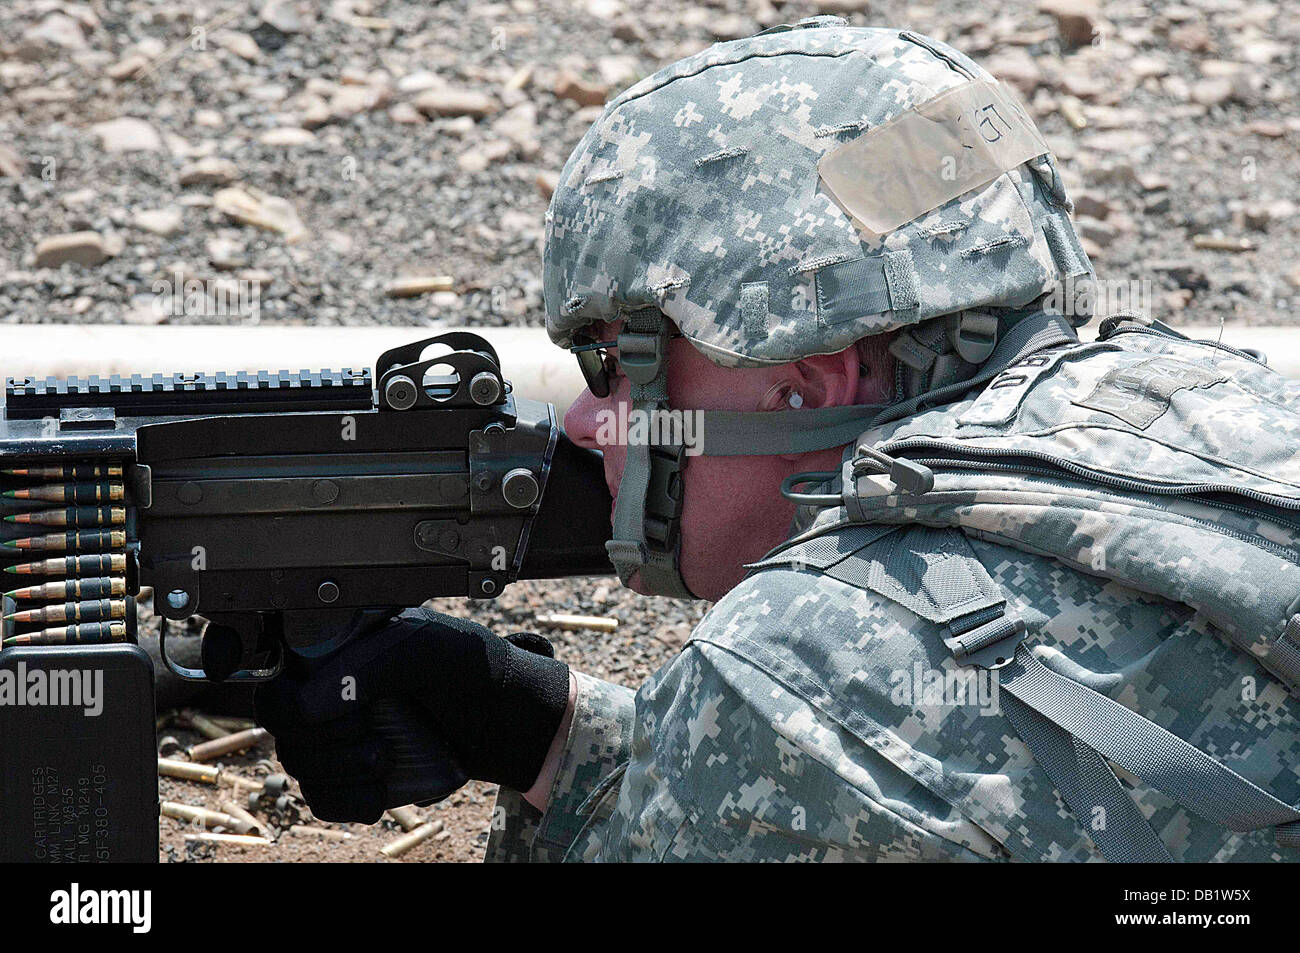 Brass and belt clips kick up dust as Sgt. Michael T. Crawford fires an M249 Machine Gun during familiarization training - Stock Image